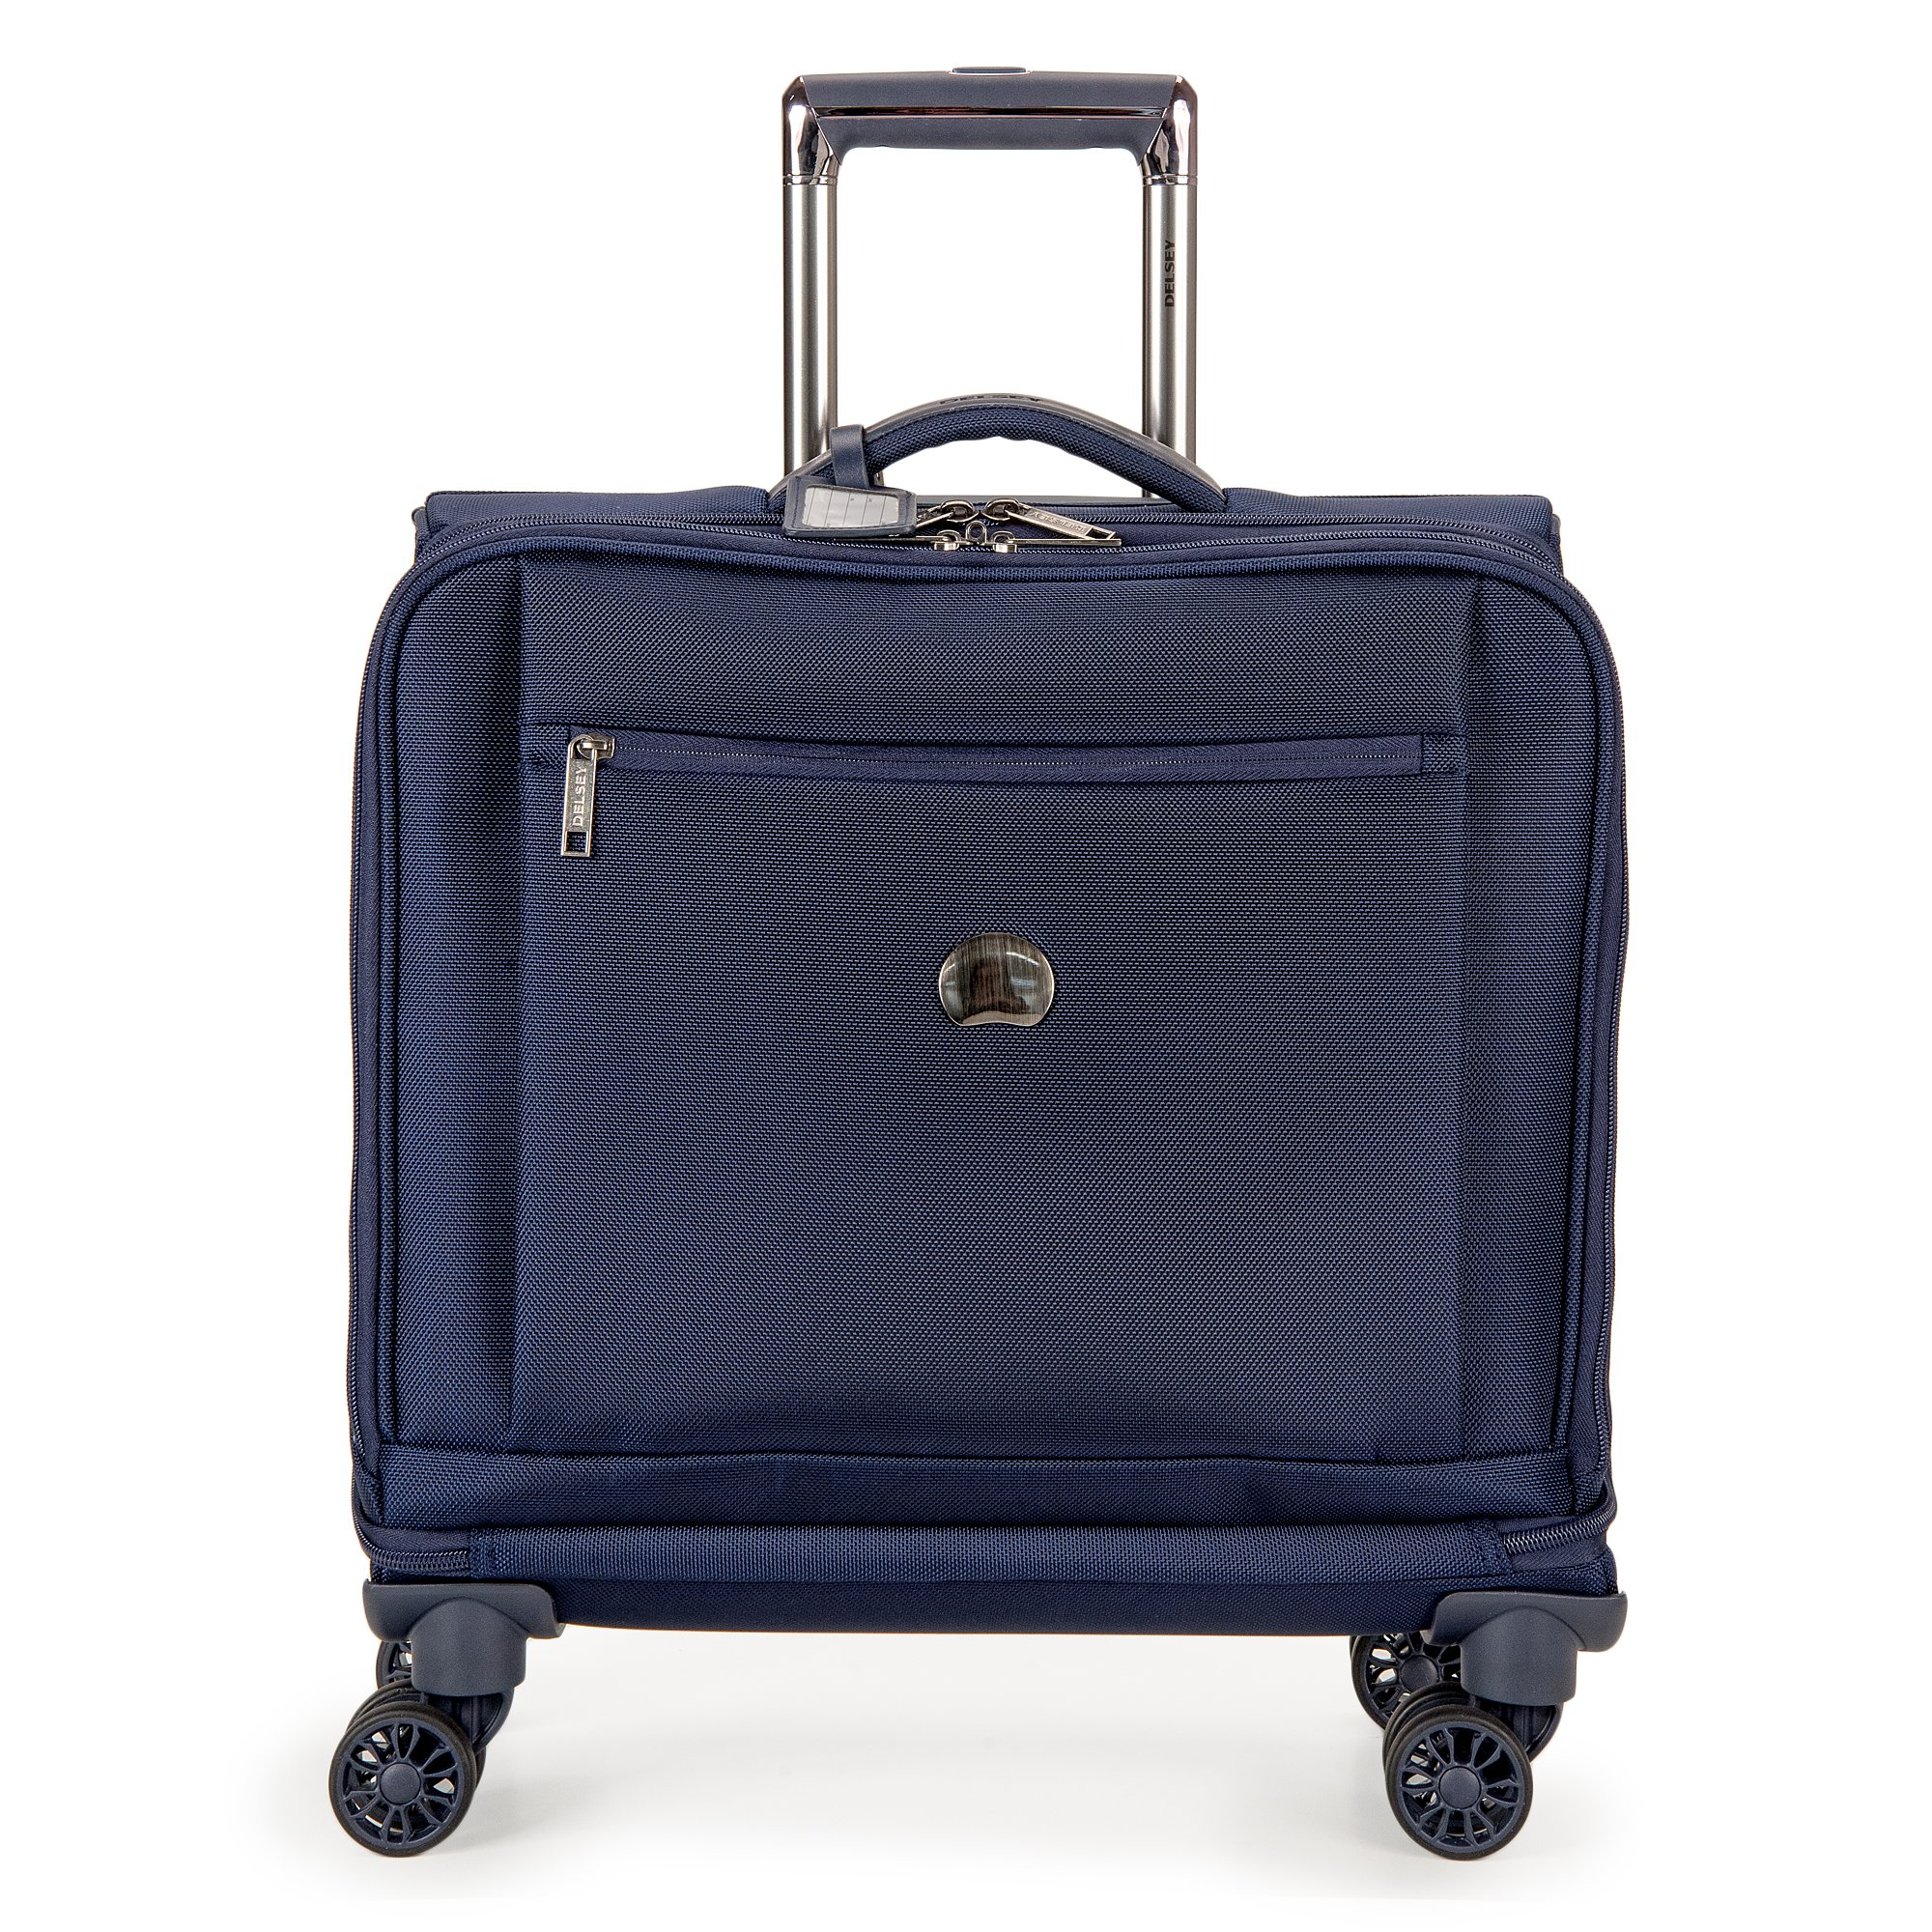 Delsey Luggage Montmartre+ Spinner Business Travel Tote, Navy